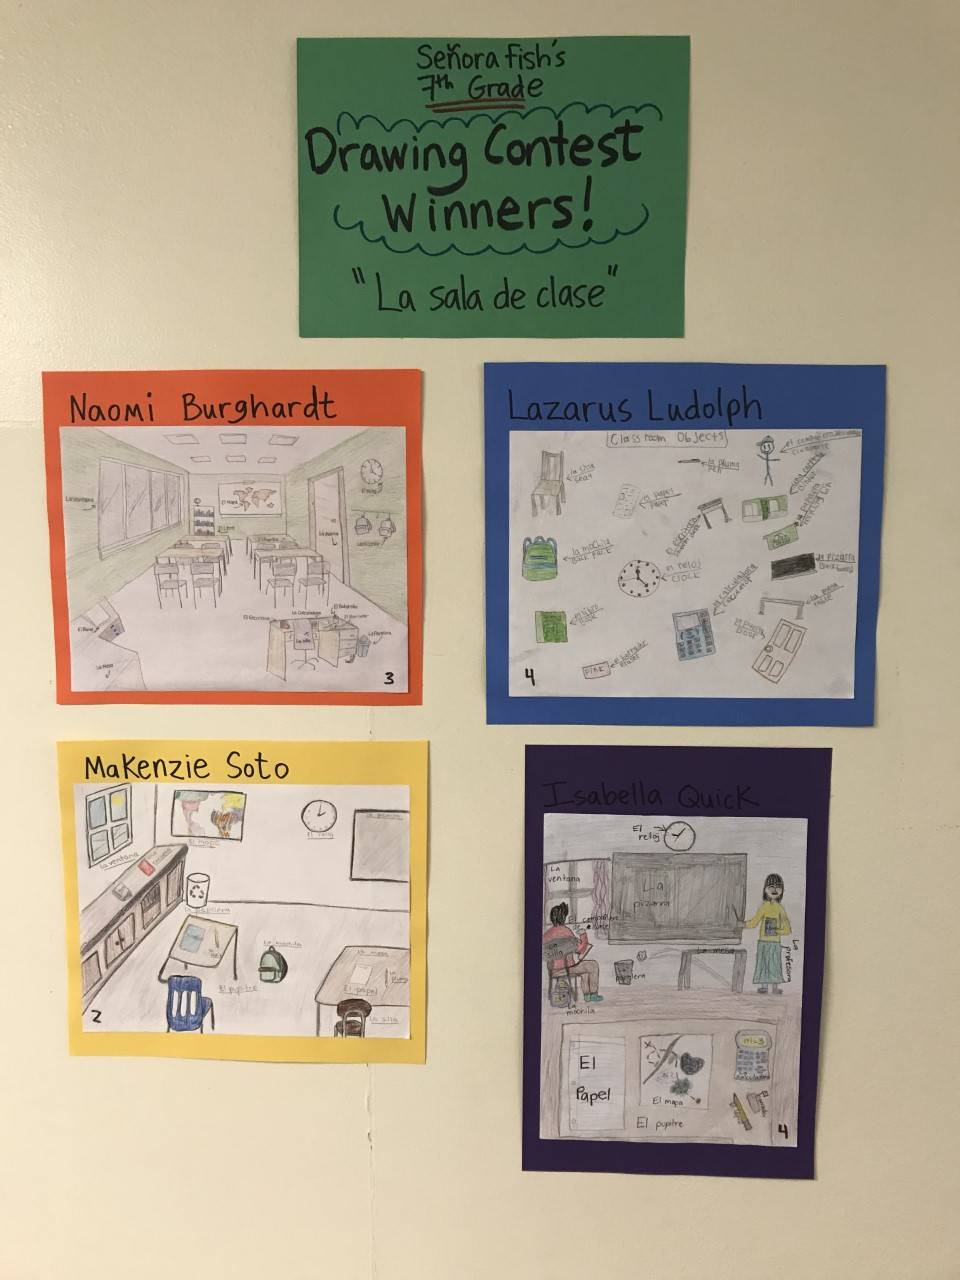 Picture of Mrs. Fish's Drawing Contest winning entries